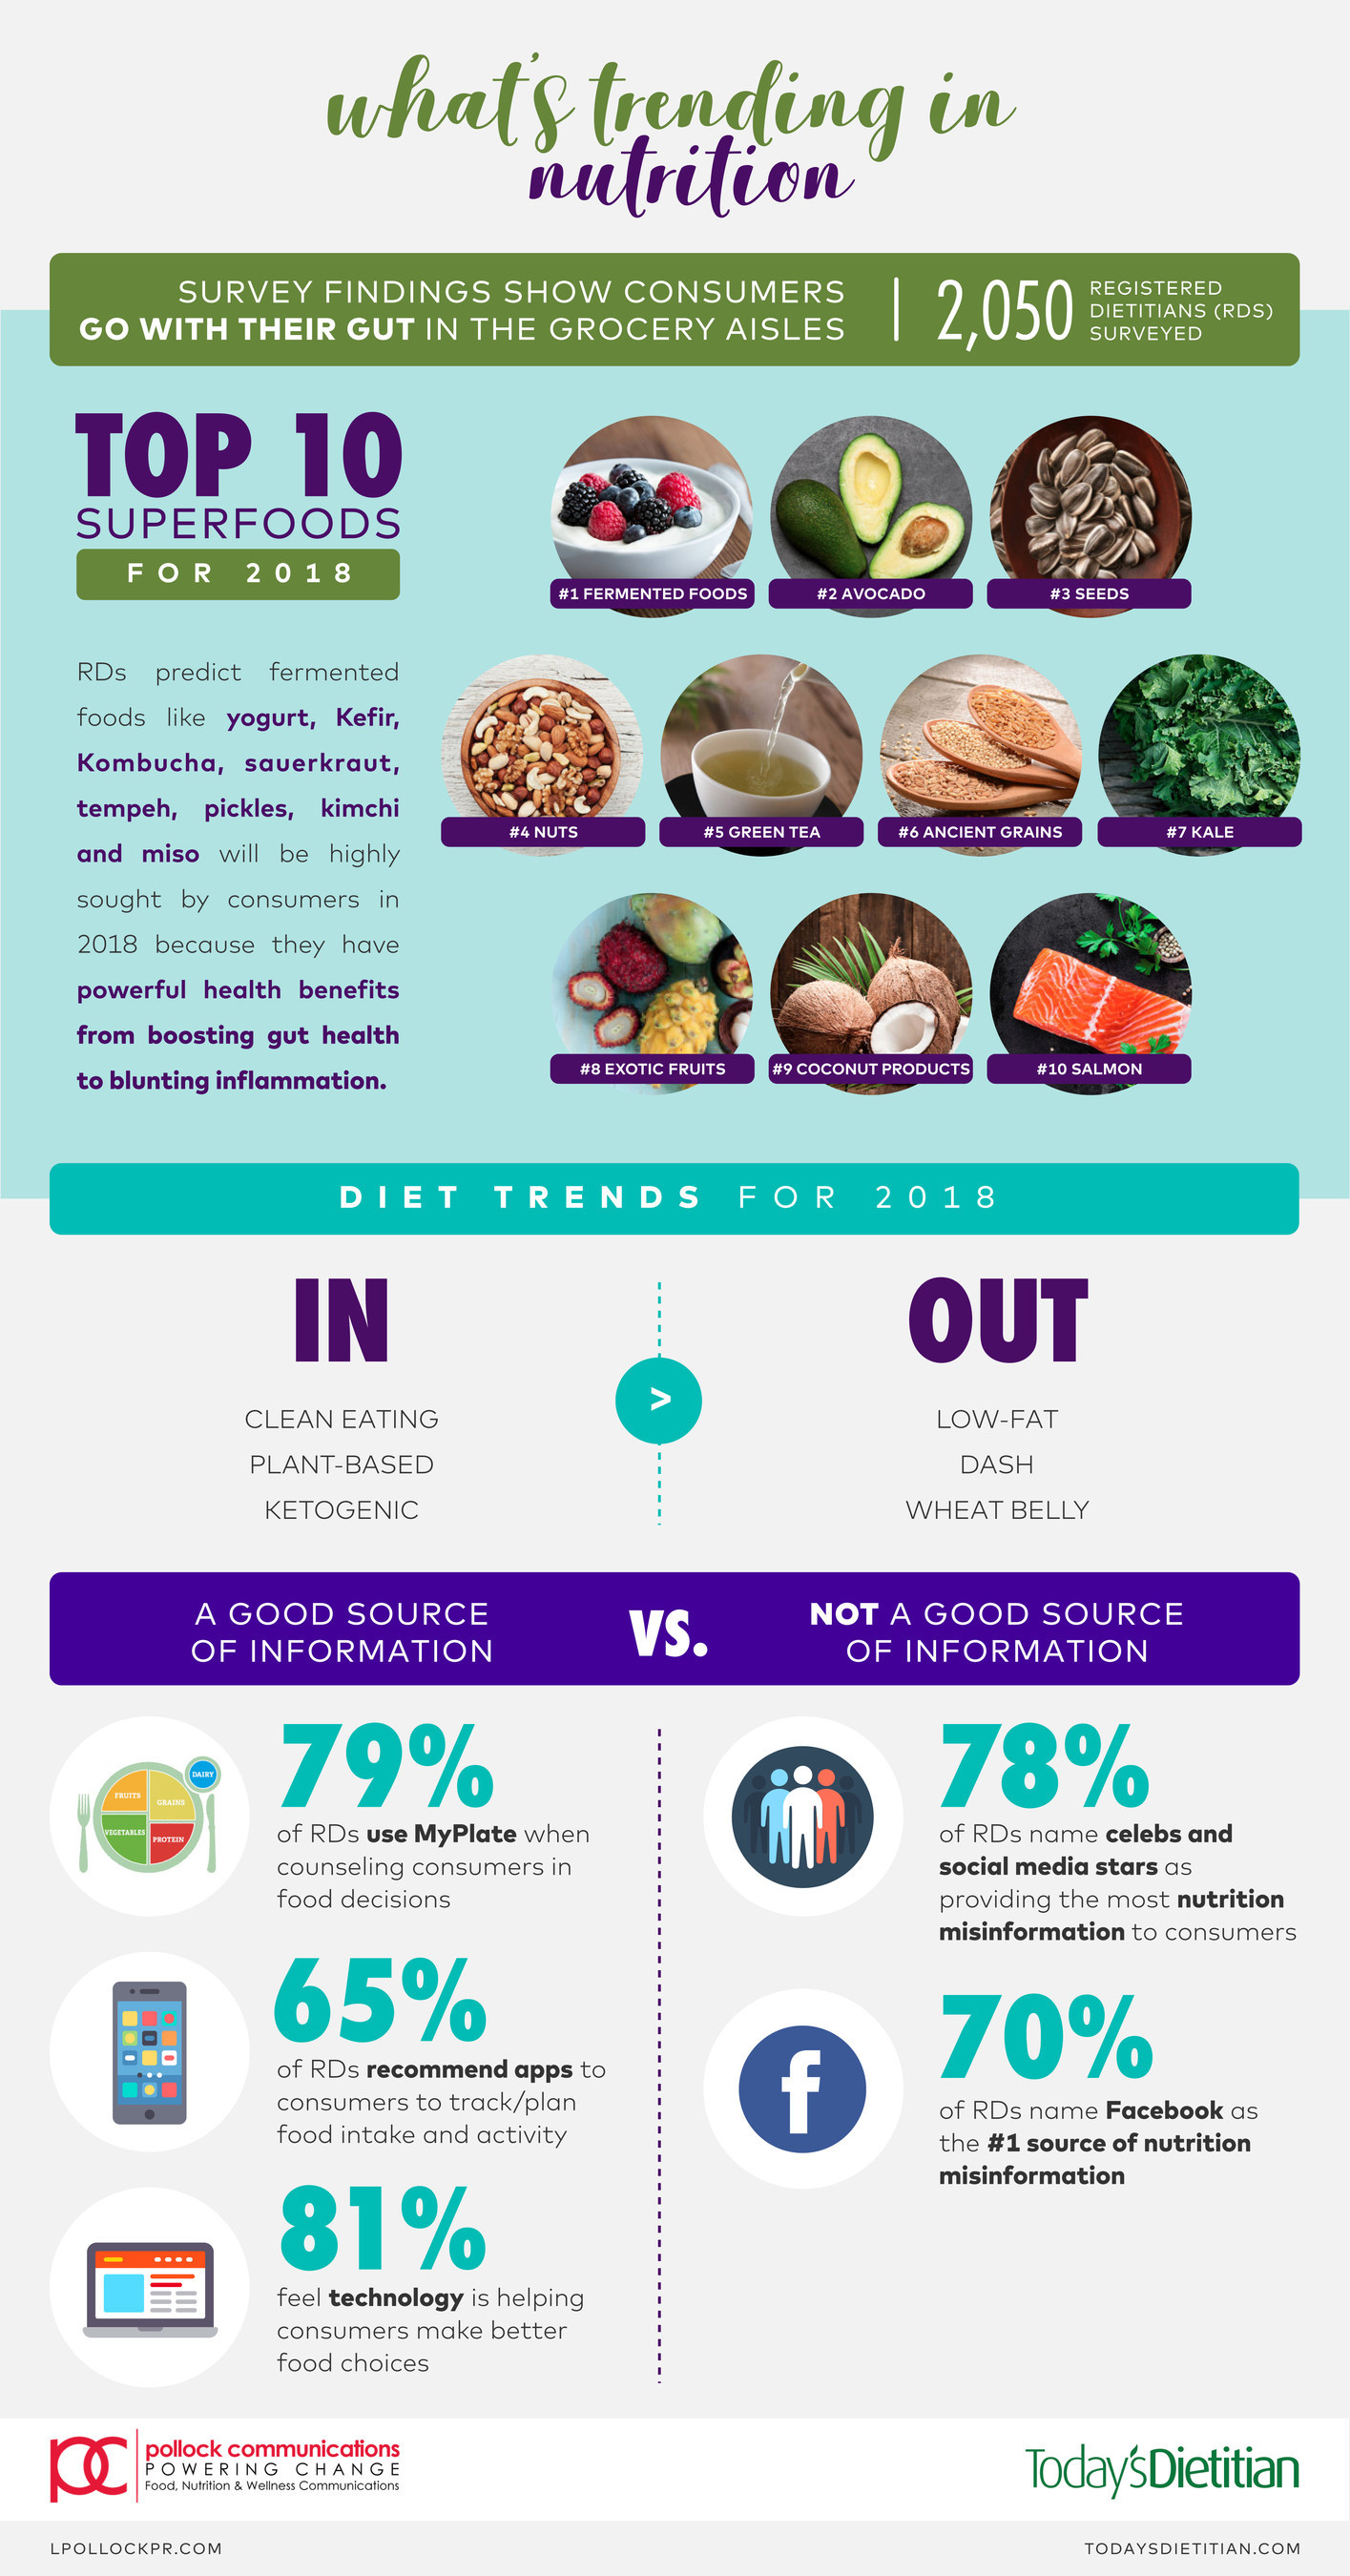 What's trending in nutrition infographic